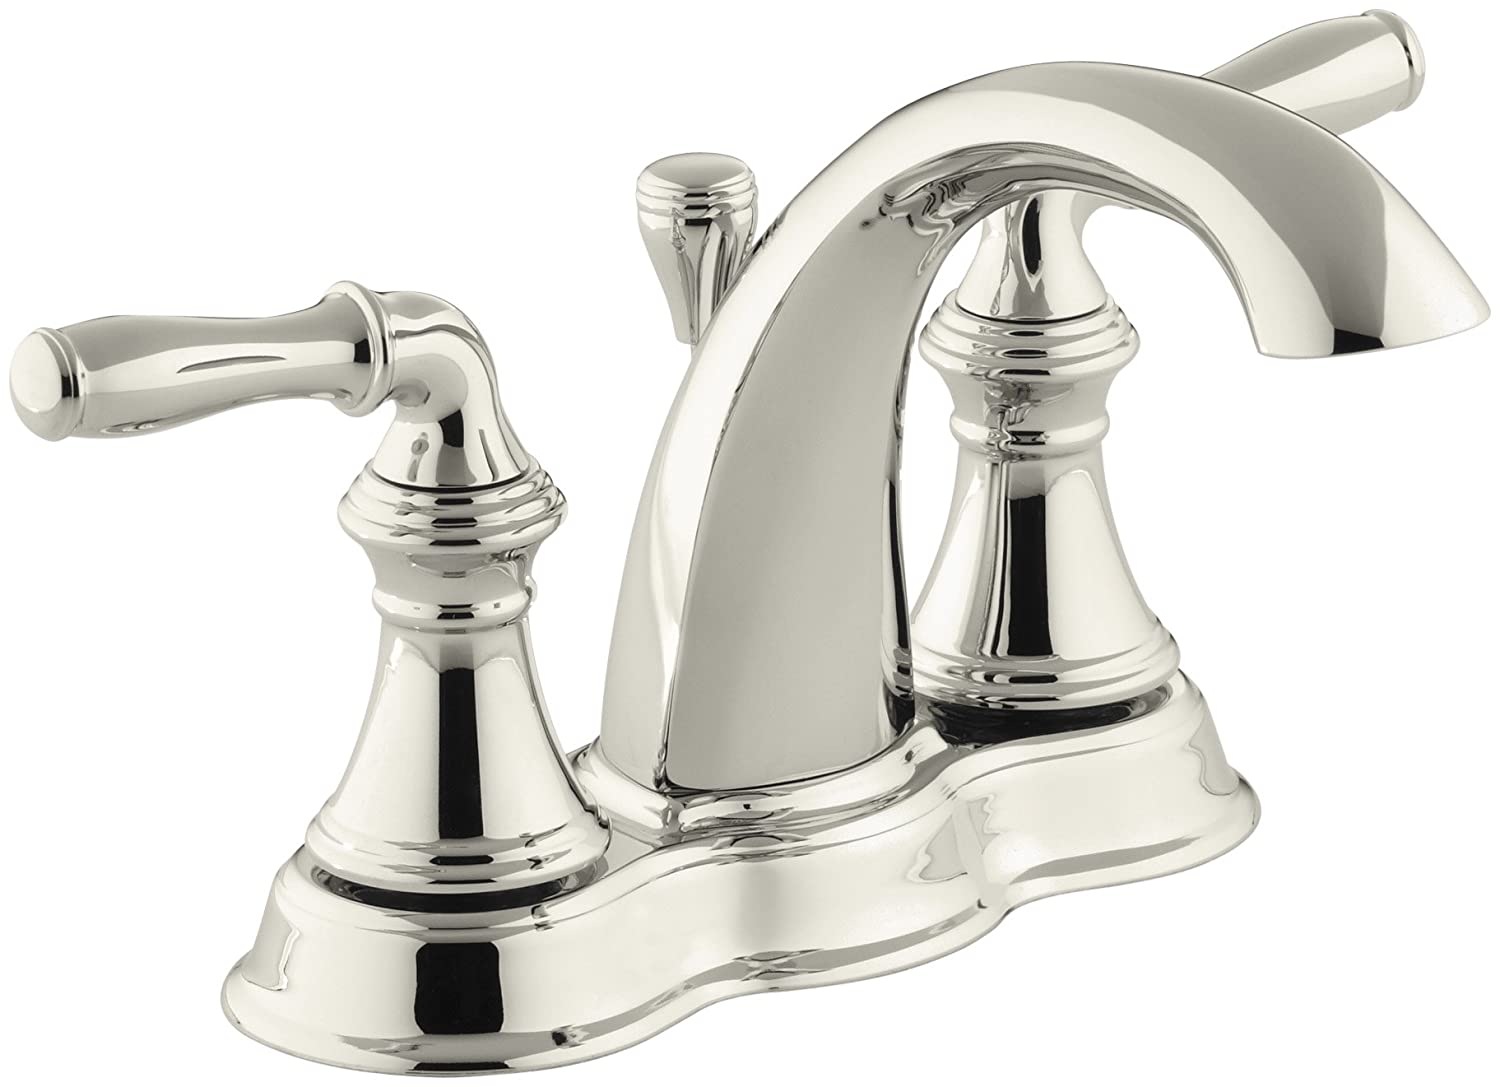 KOHLER K 393 N4 SN Devonshire Centerset Bathroom Sink Faucet, Vibrant  Polished Nickel     Amazon.com